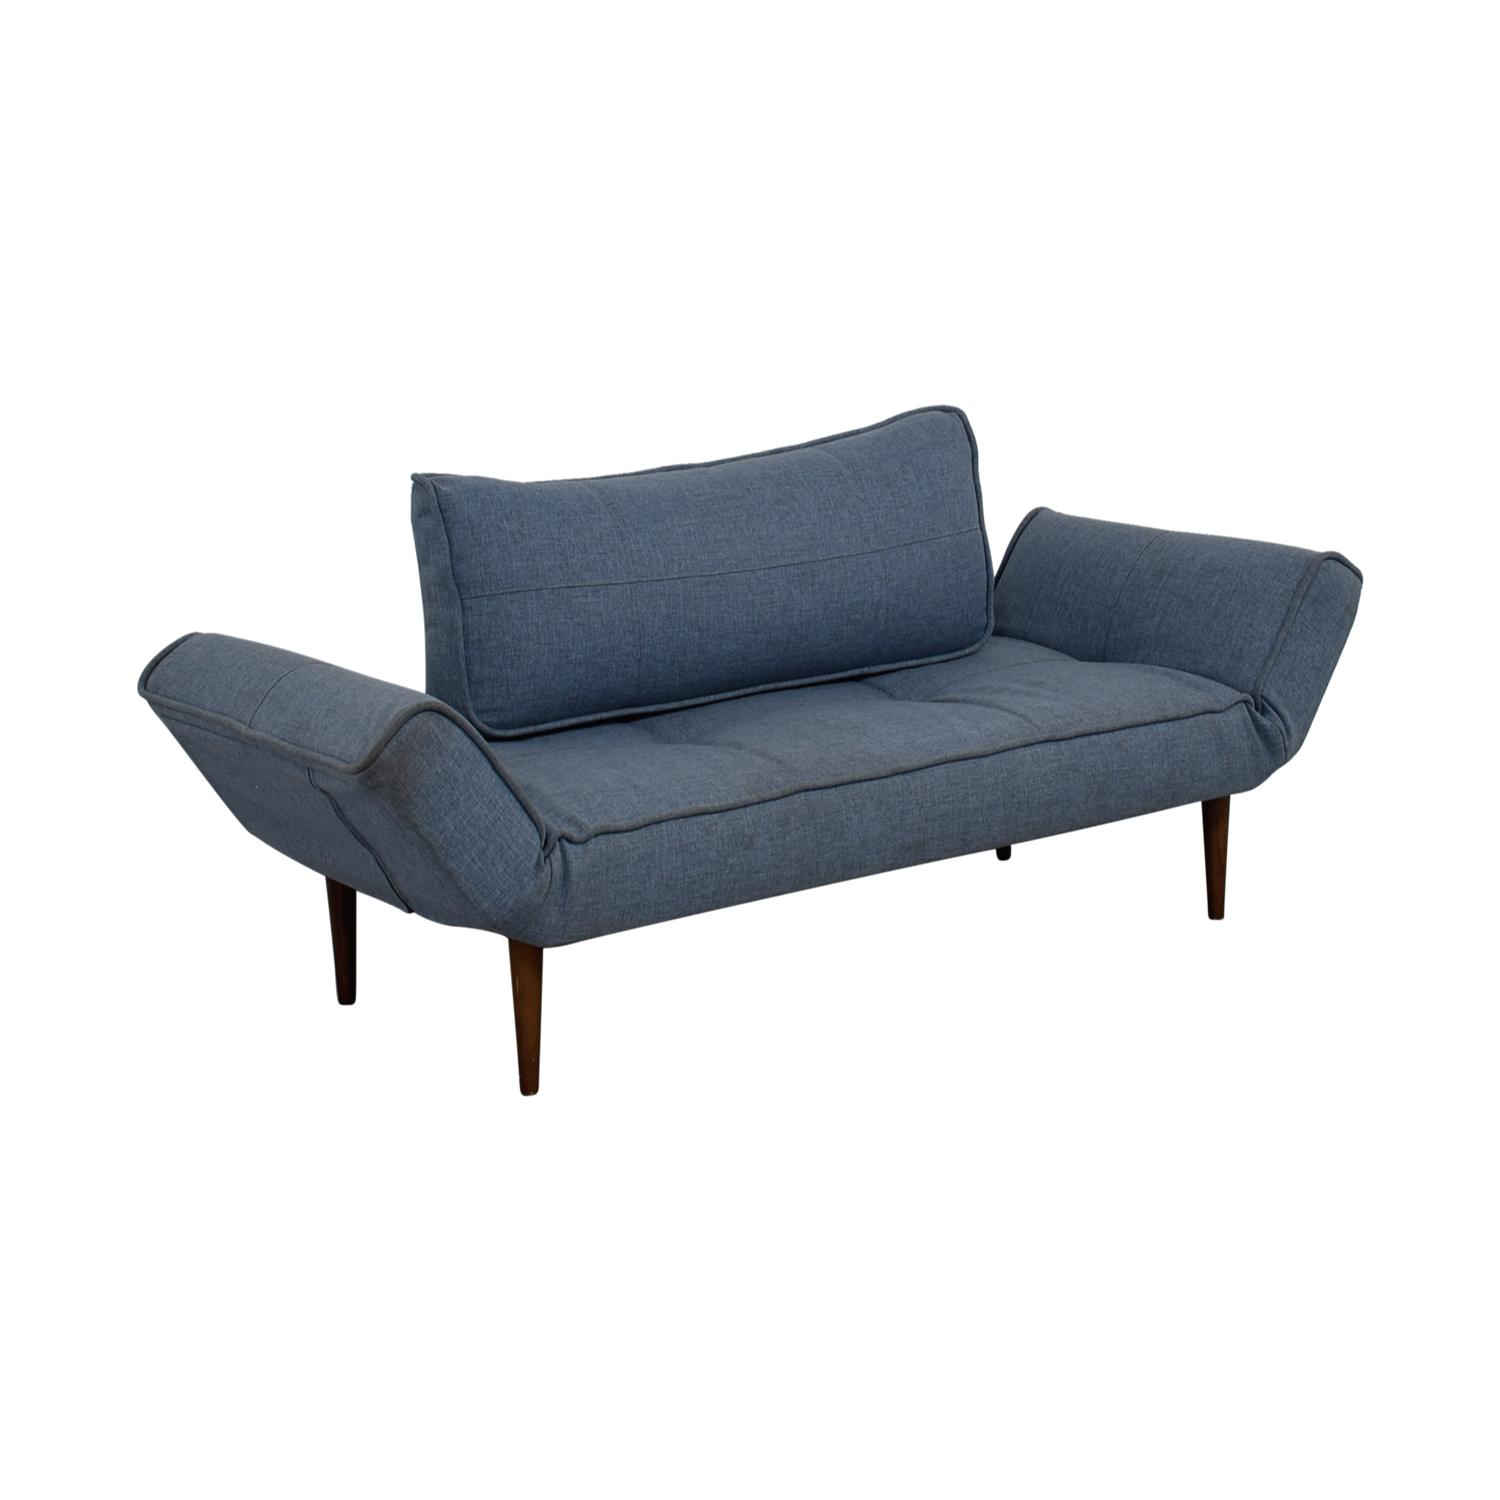 buy Blue Single Cushion Futon With Back Pillow  Sofas